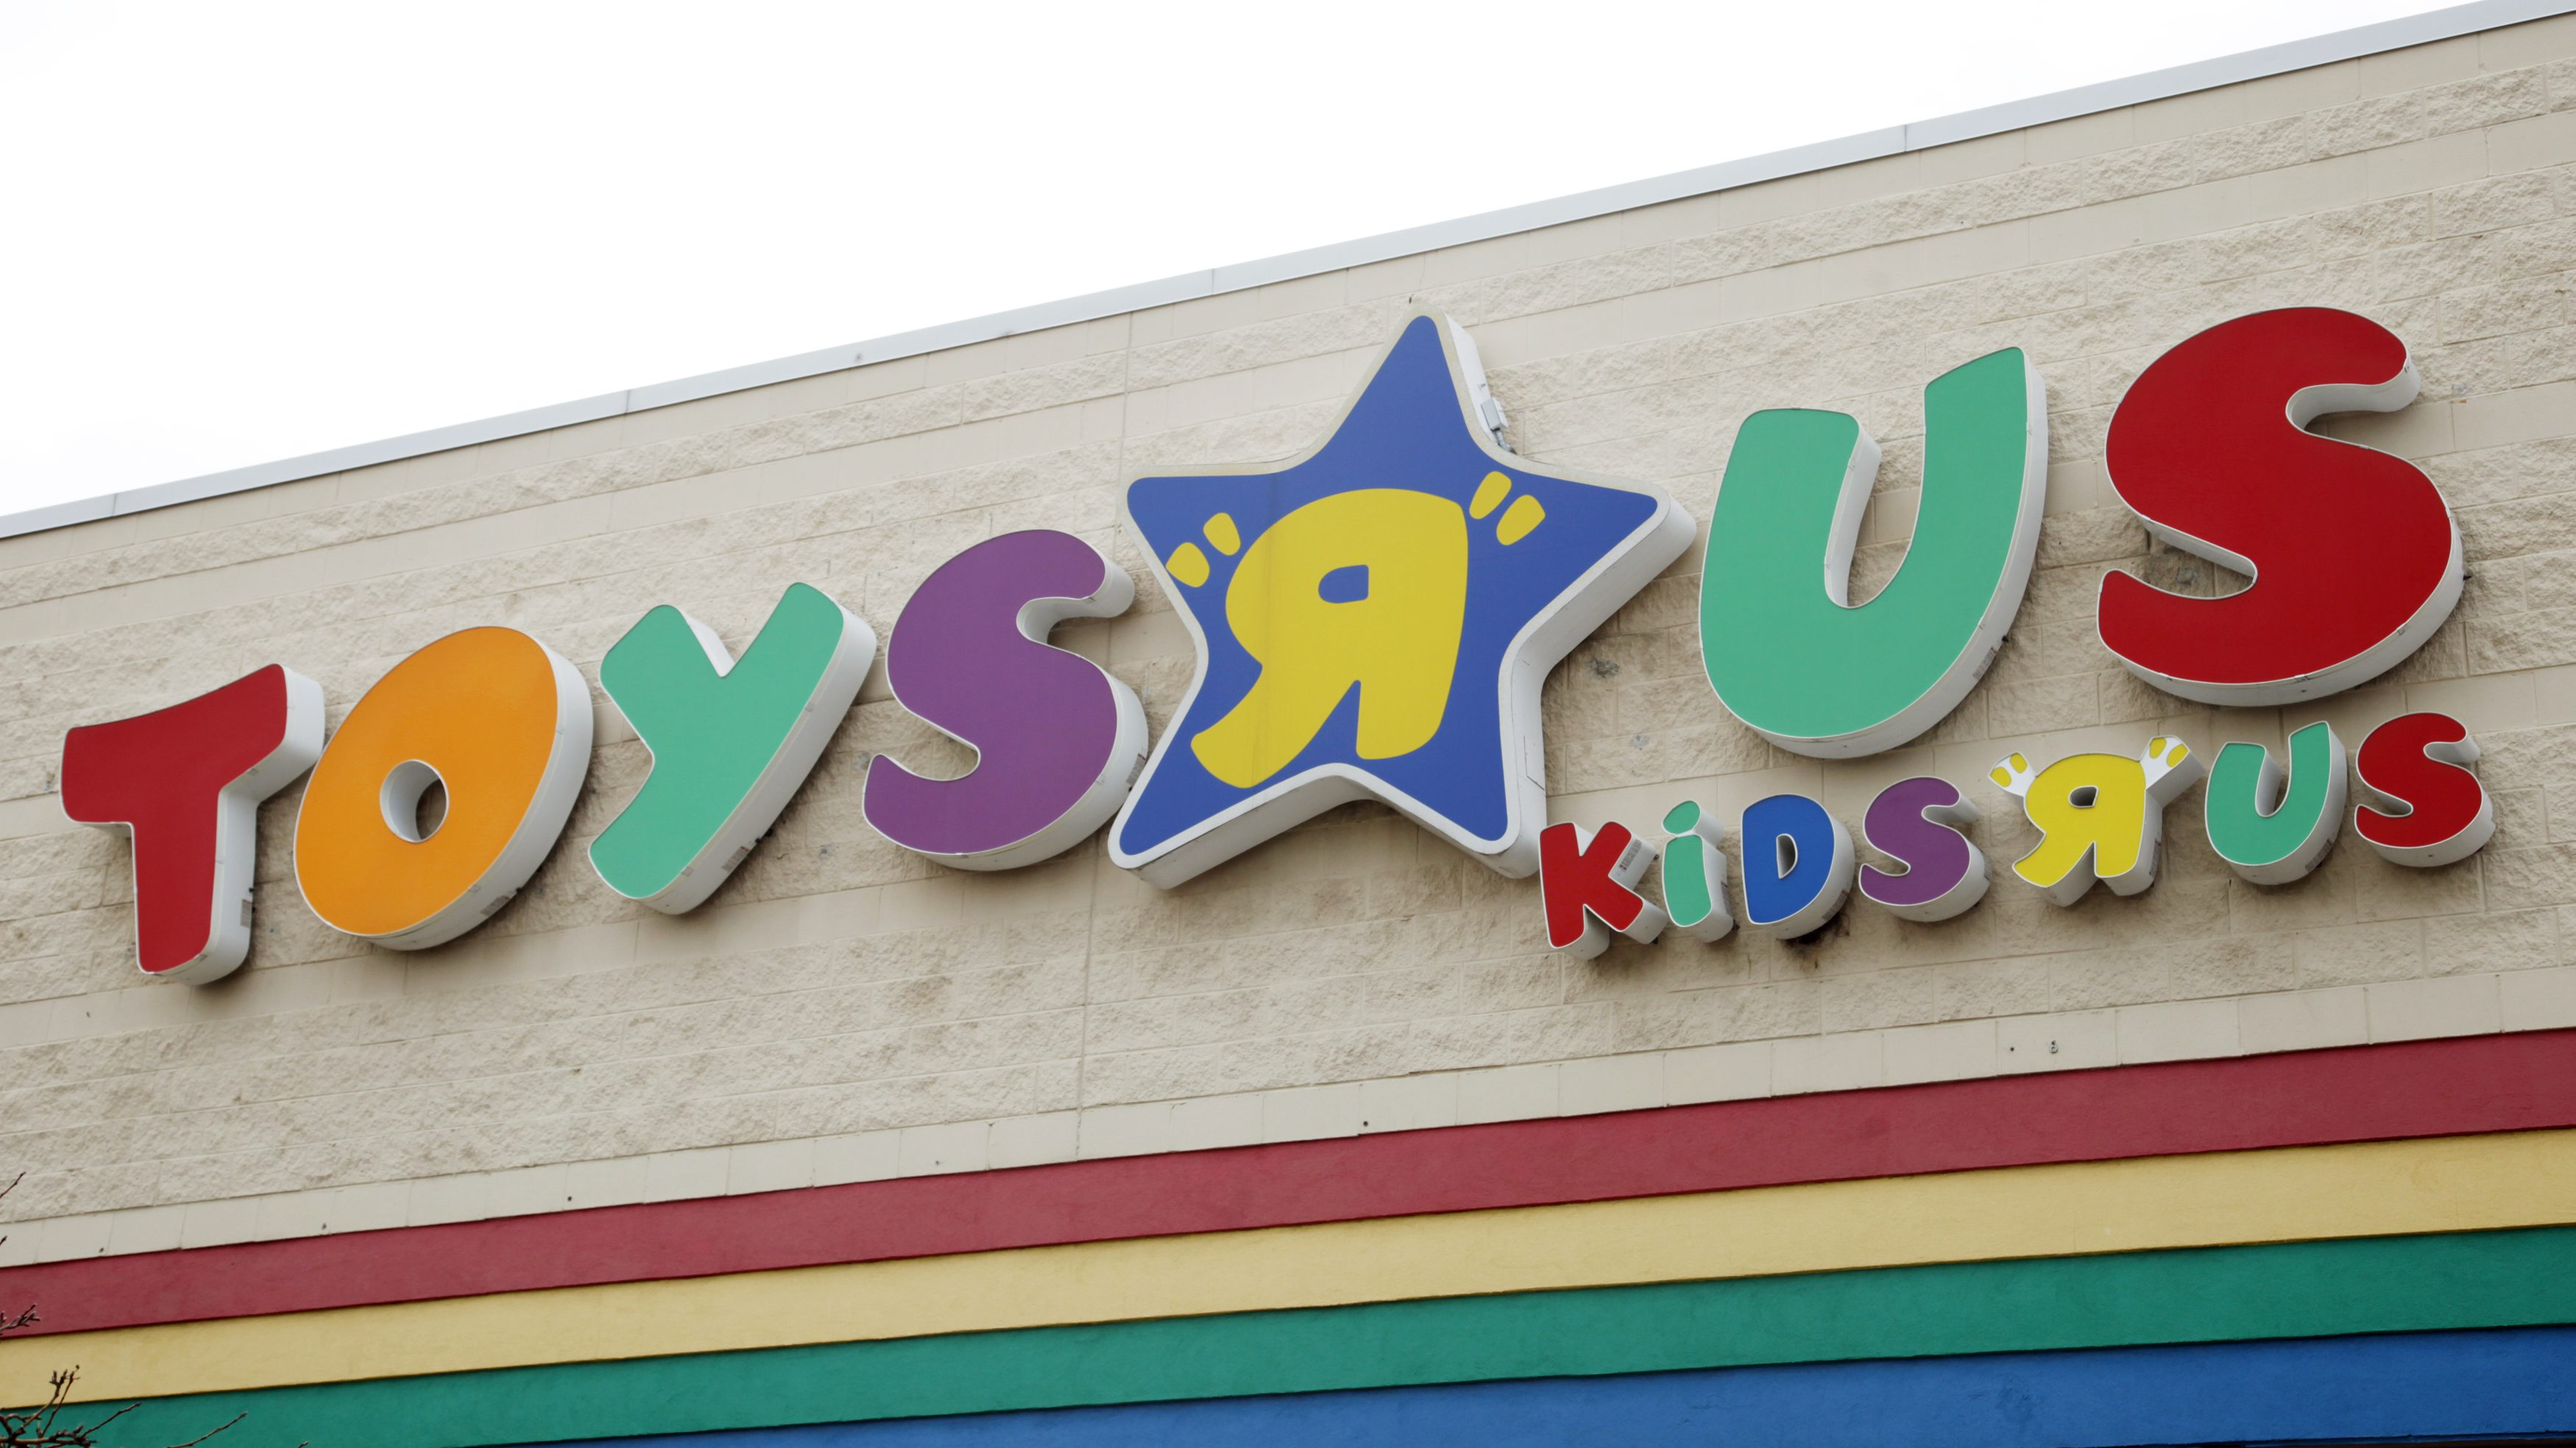 The sign of the Toys R Us  store is seen in a Denver suburb March 15, 2011. Privately held toy retailer Toys R Us has canceled a $1.1 billion loan deal that was intended to refinance its debt and reduce borrowing costs, Bloomberg reported on Monday. REUTERS/Rick Wilking (UNITED STATES - Tags: BUSINESS) - GM1E73G06O201